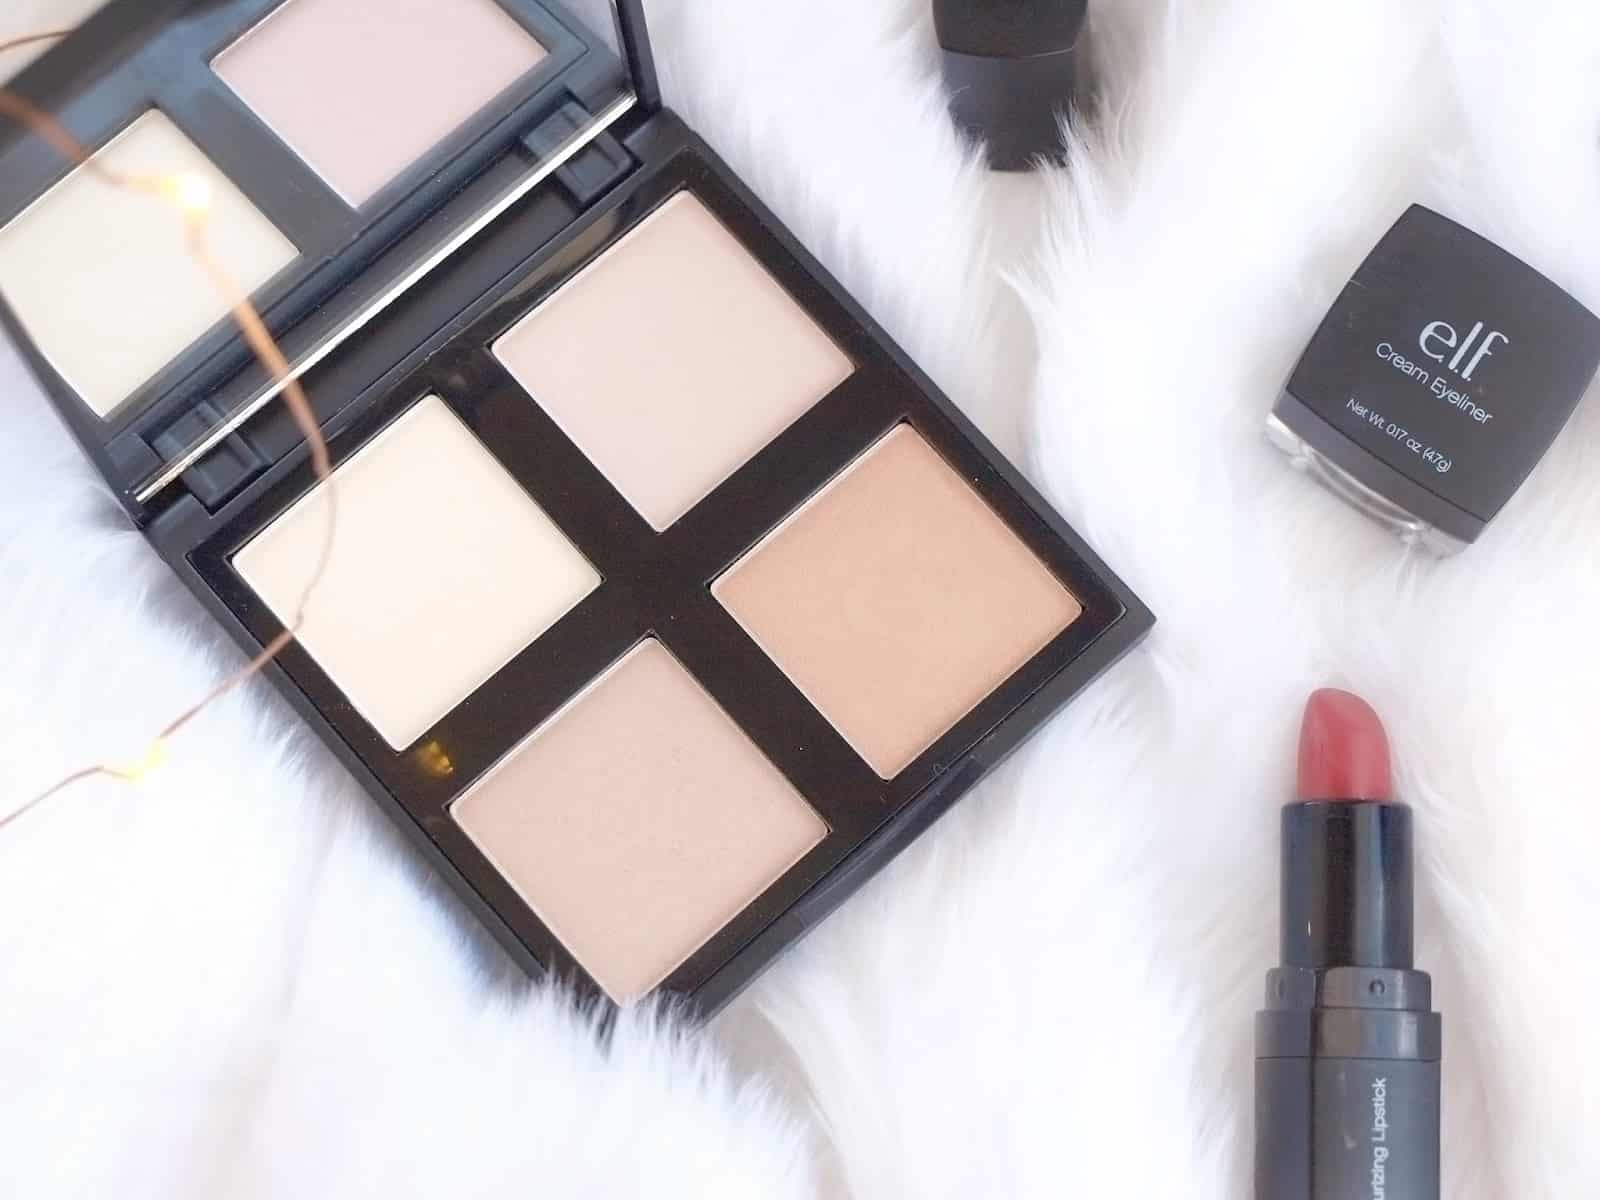 e.l.f. Cosmetics Illuminating Palette Review and Swatches 1